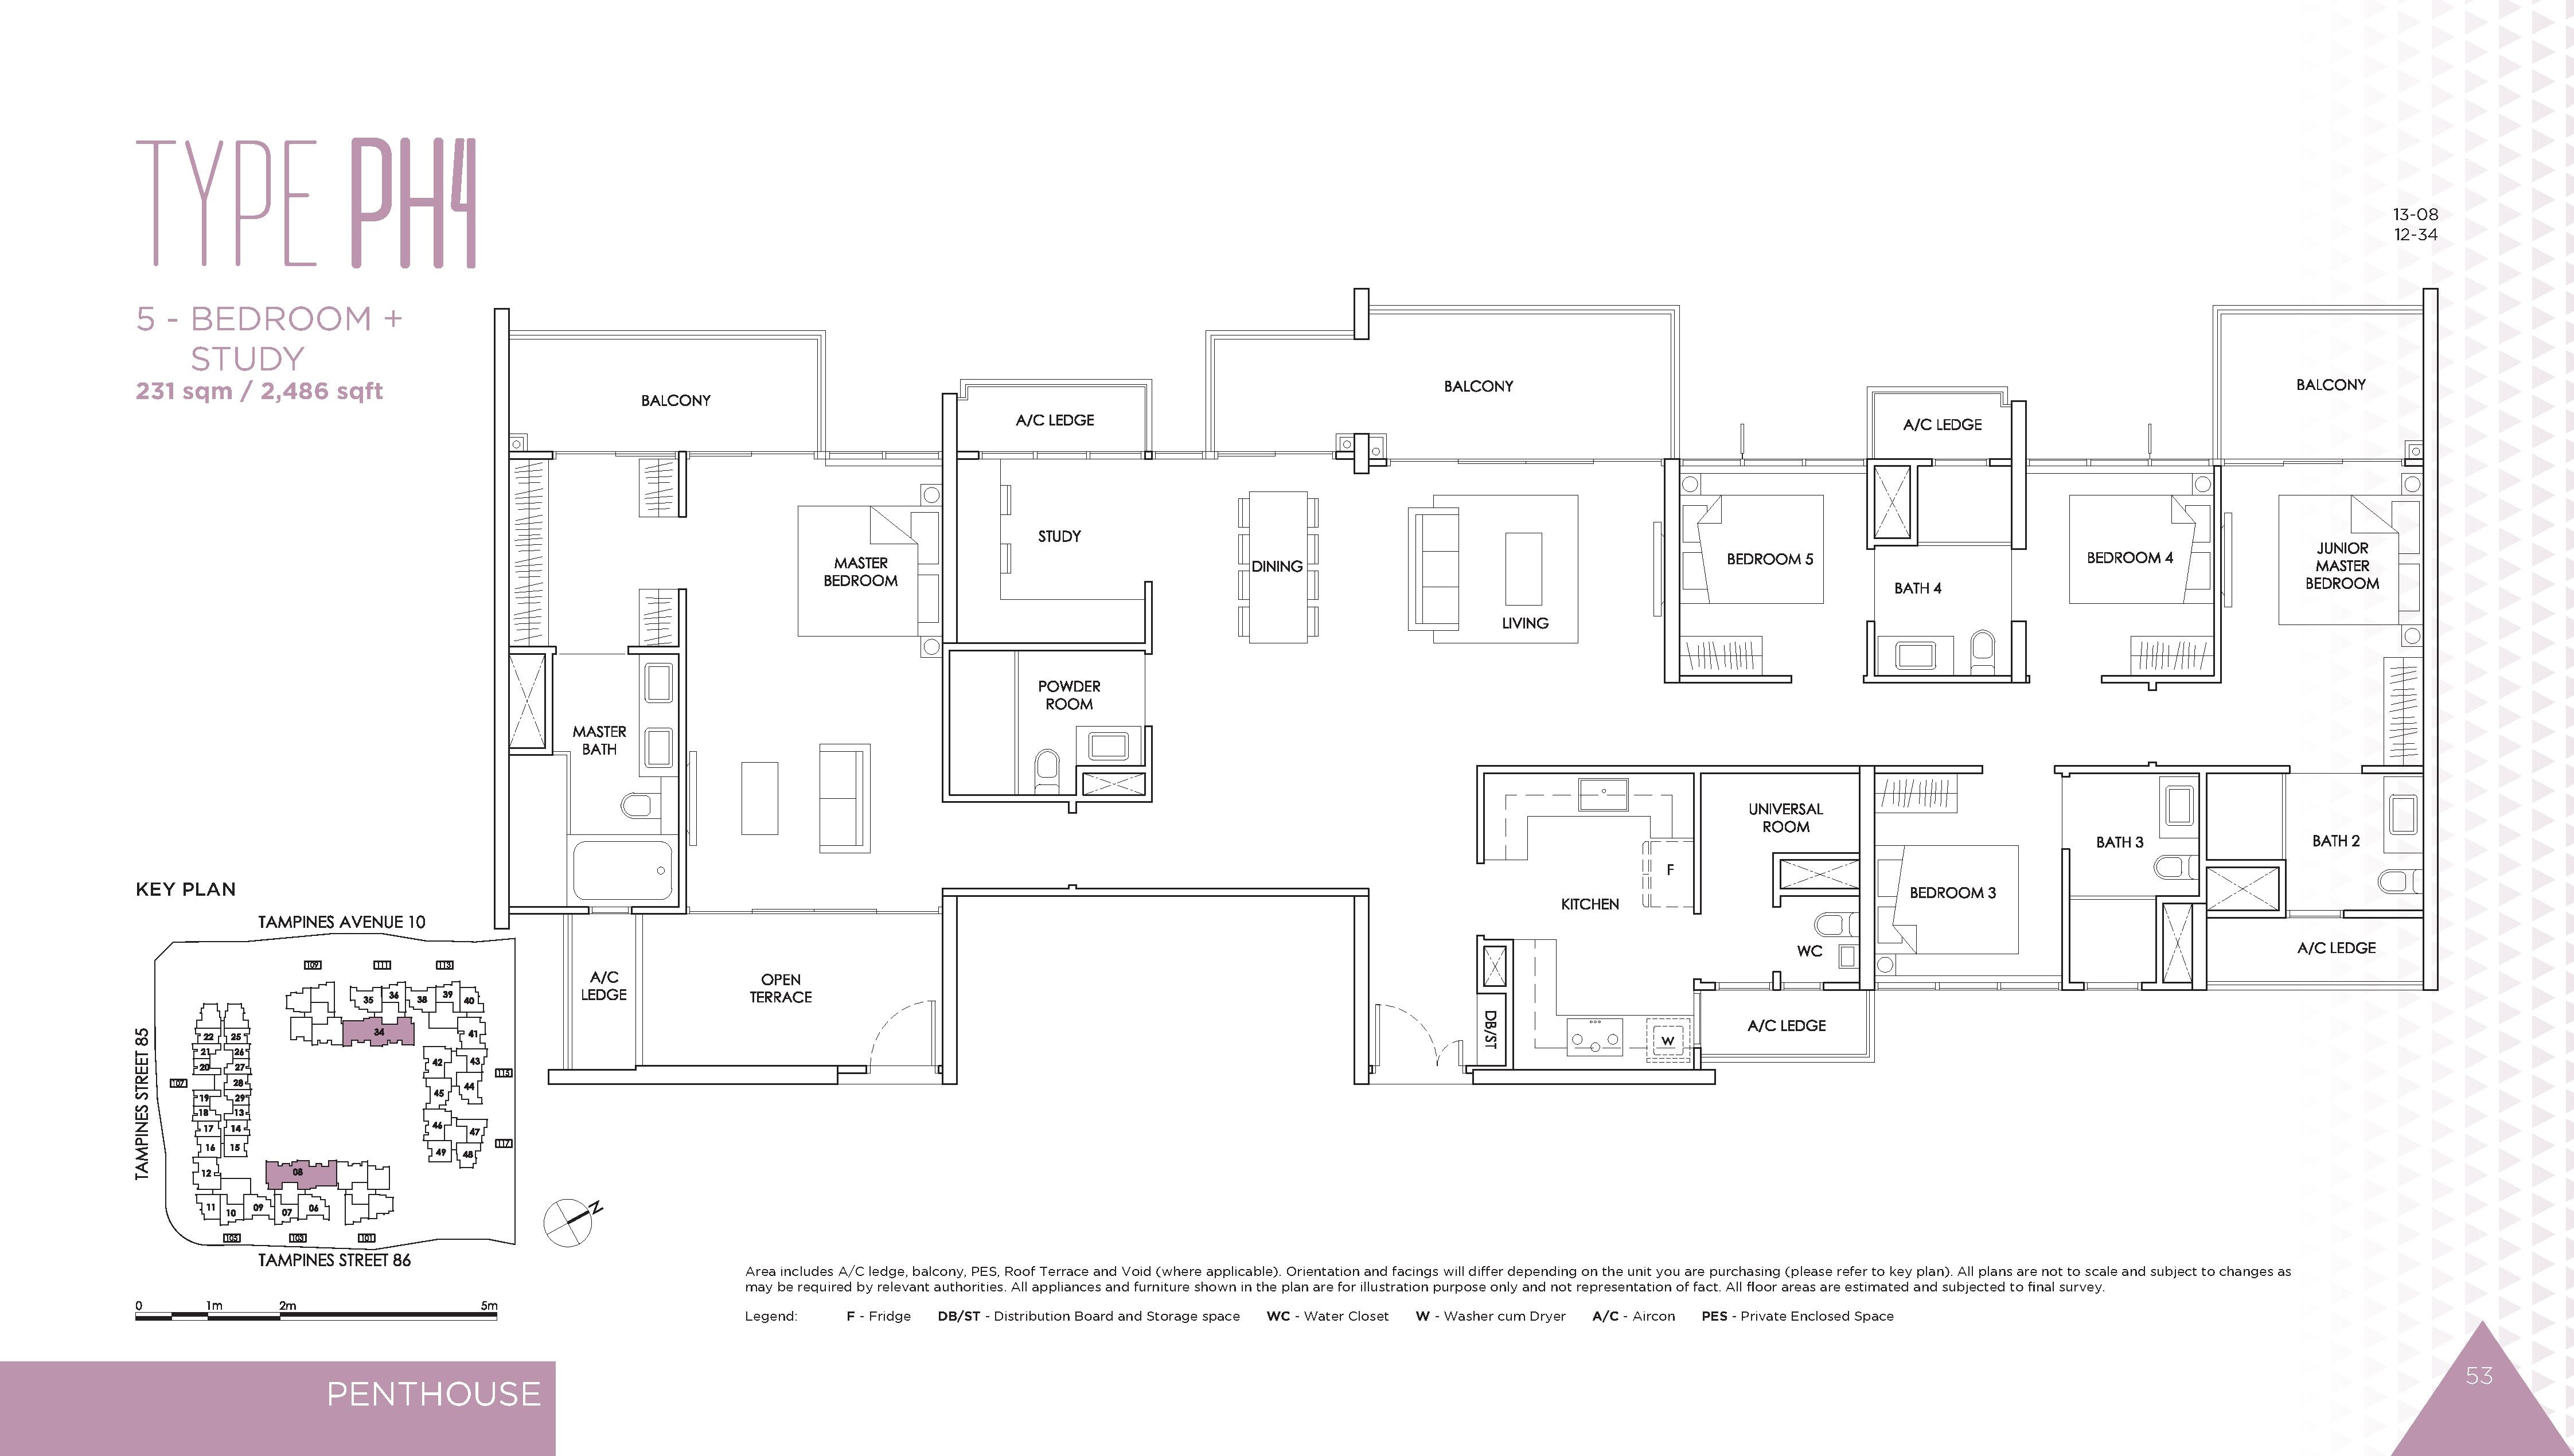 The Alps Residences 5 Bedroom + Study Penthouse Floor Plans Type PH4